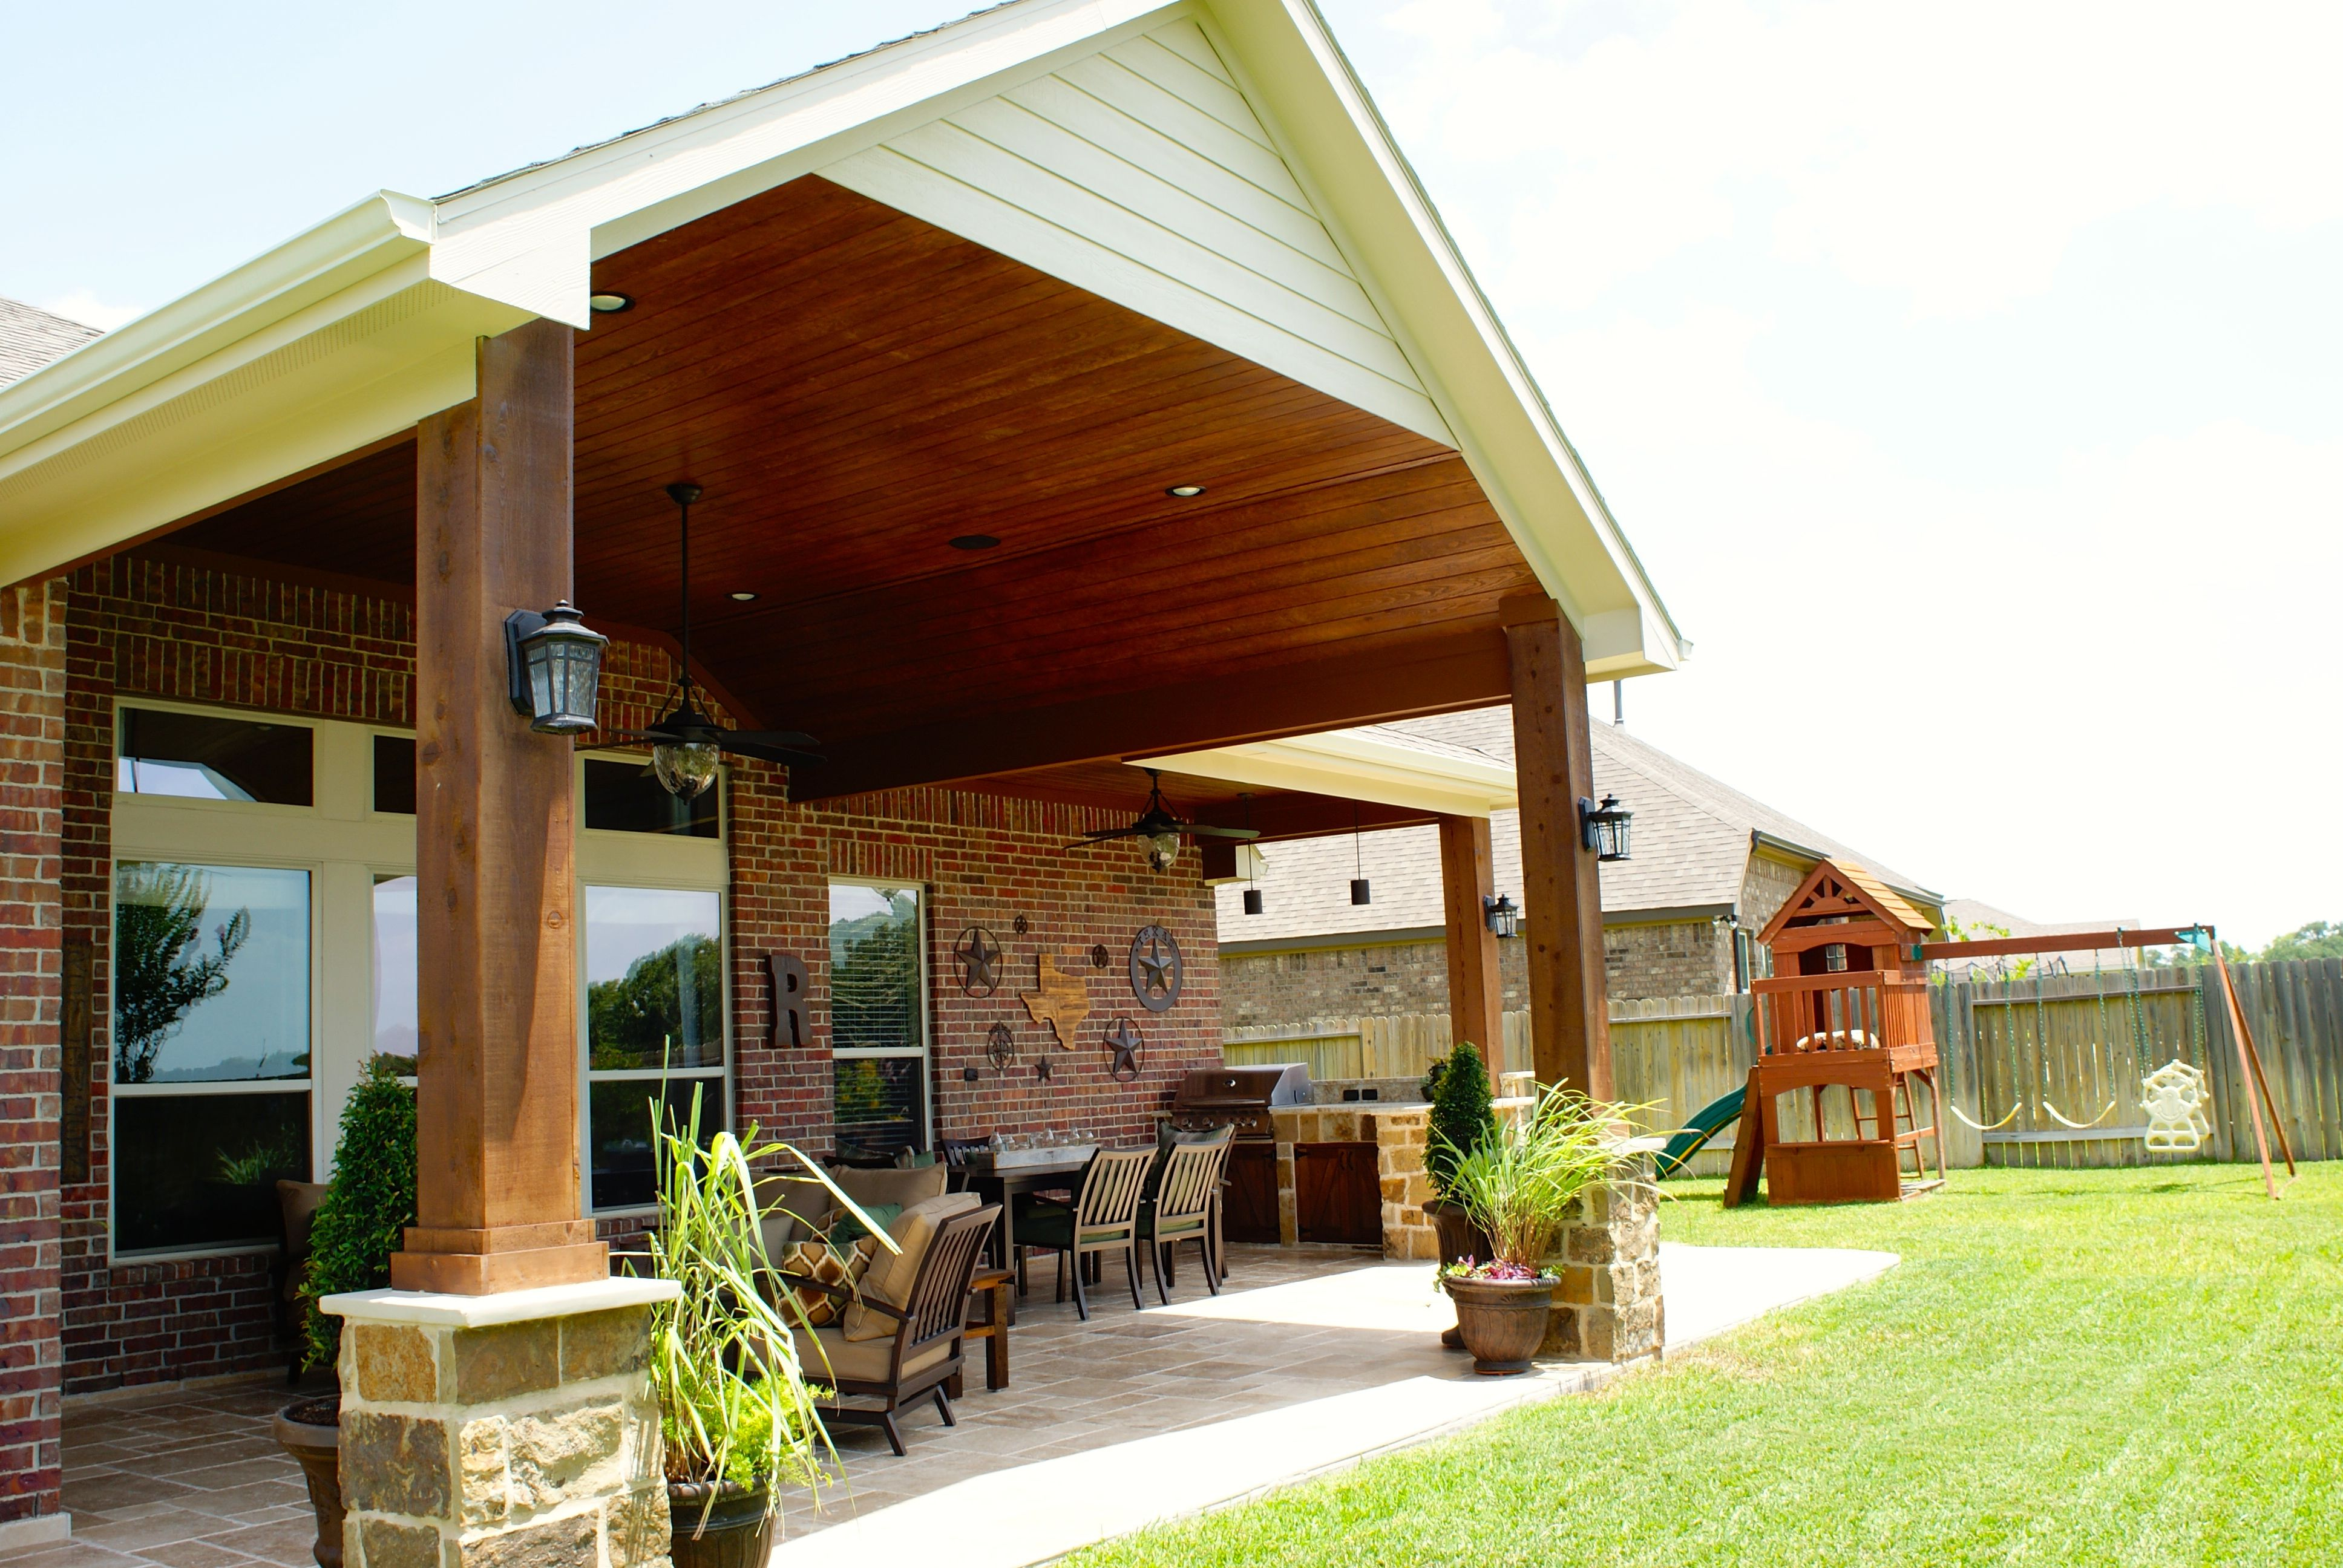 This Texas Hill Country Style Patio Cover Came About Because The Homeowner  Wanted To Extend Their Current Cover And Add A Small Kitchen Area.